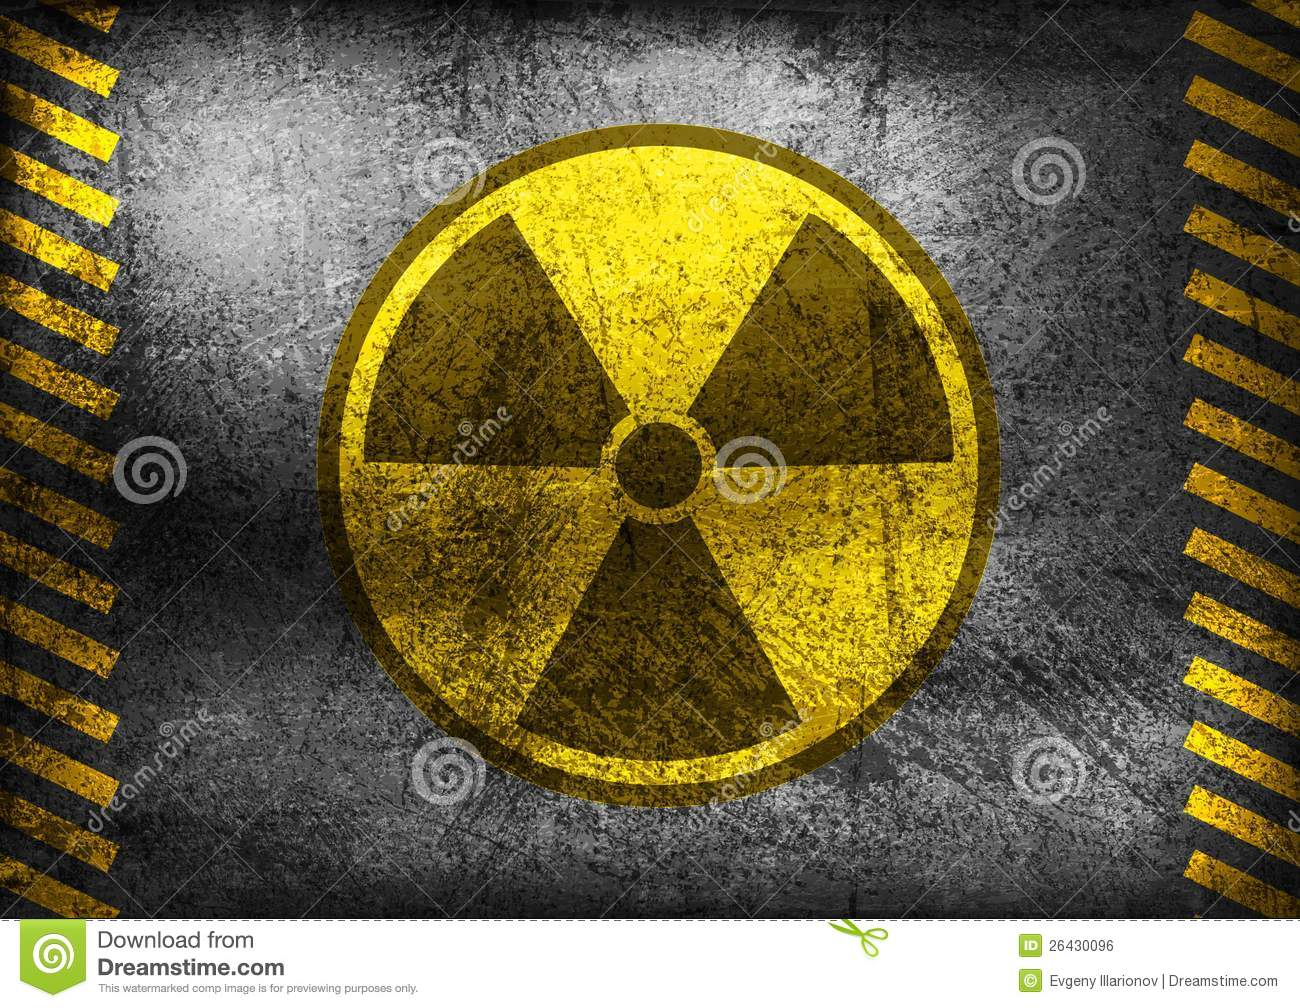 3d Wallpaper Yellow Grunge Nuclear Radiation Symbol Royalty Free Stock Image